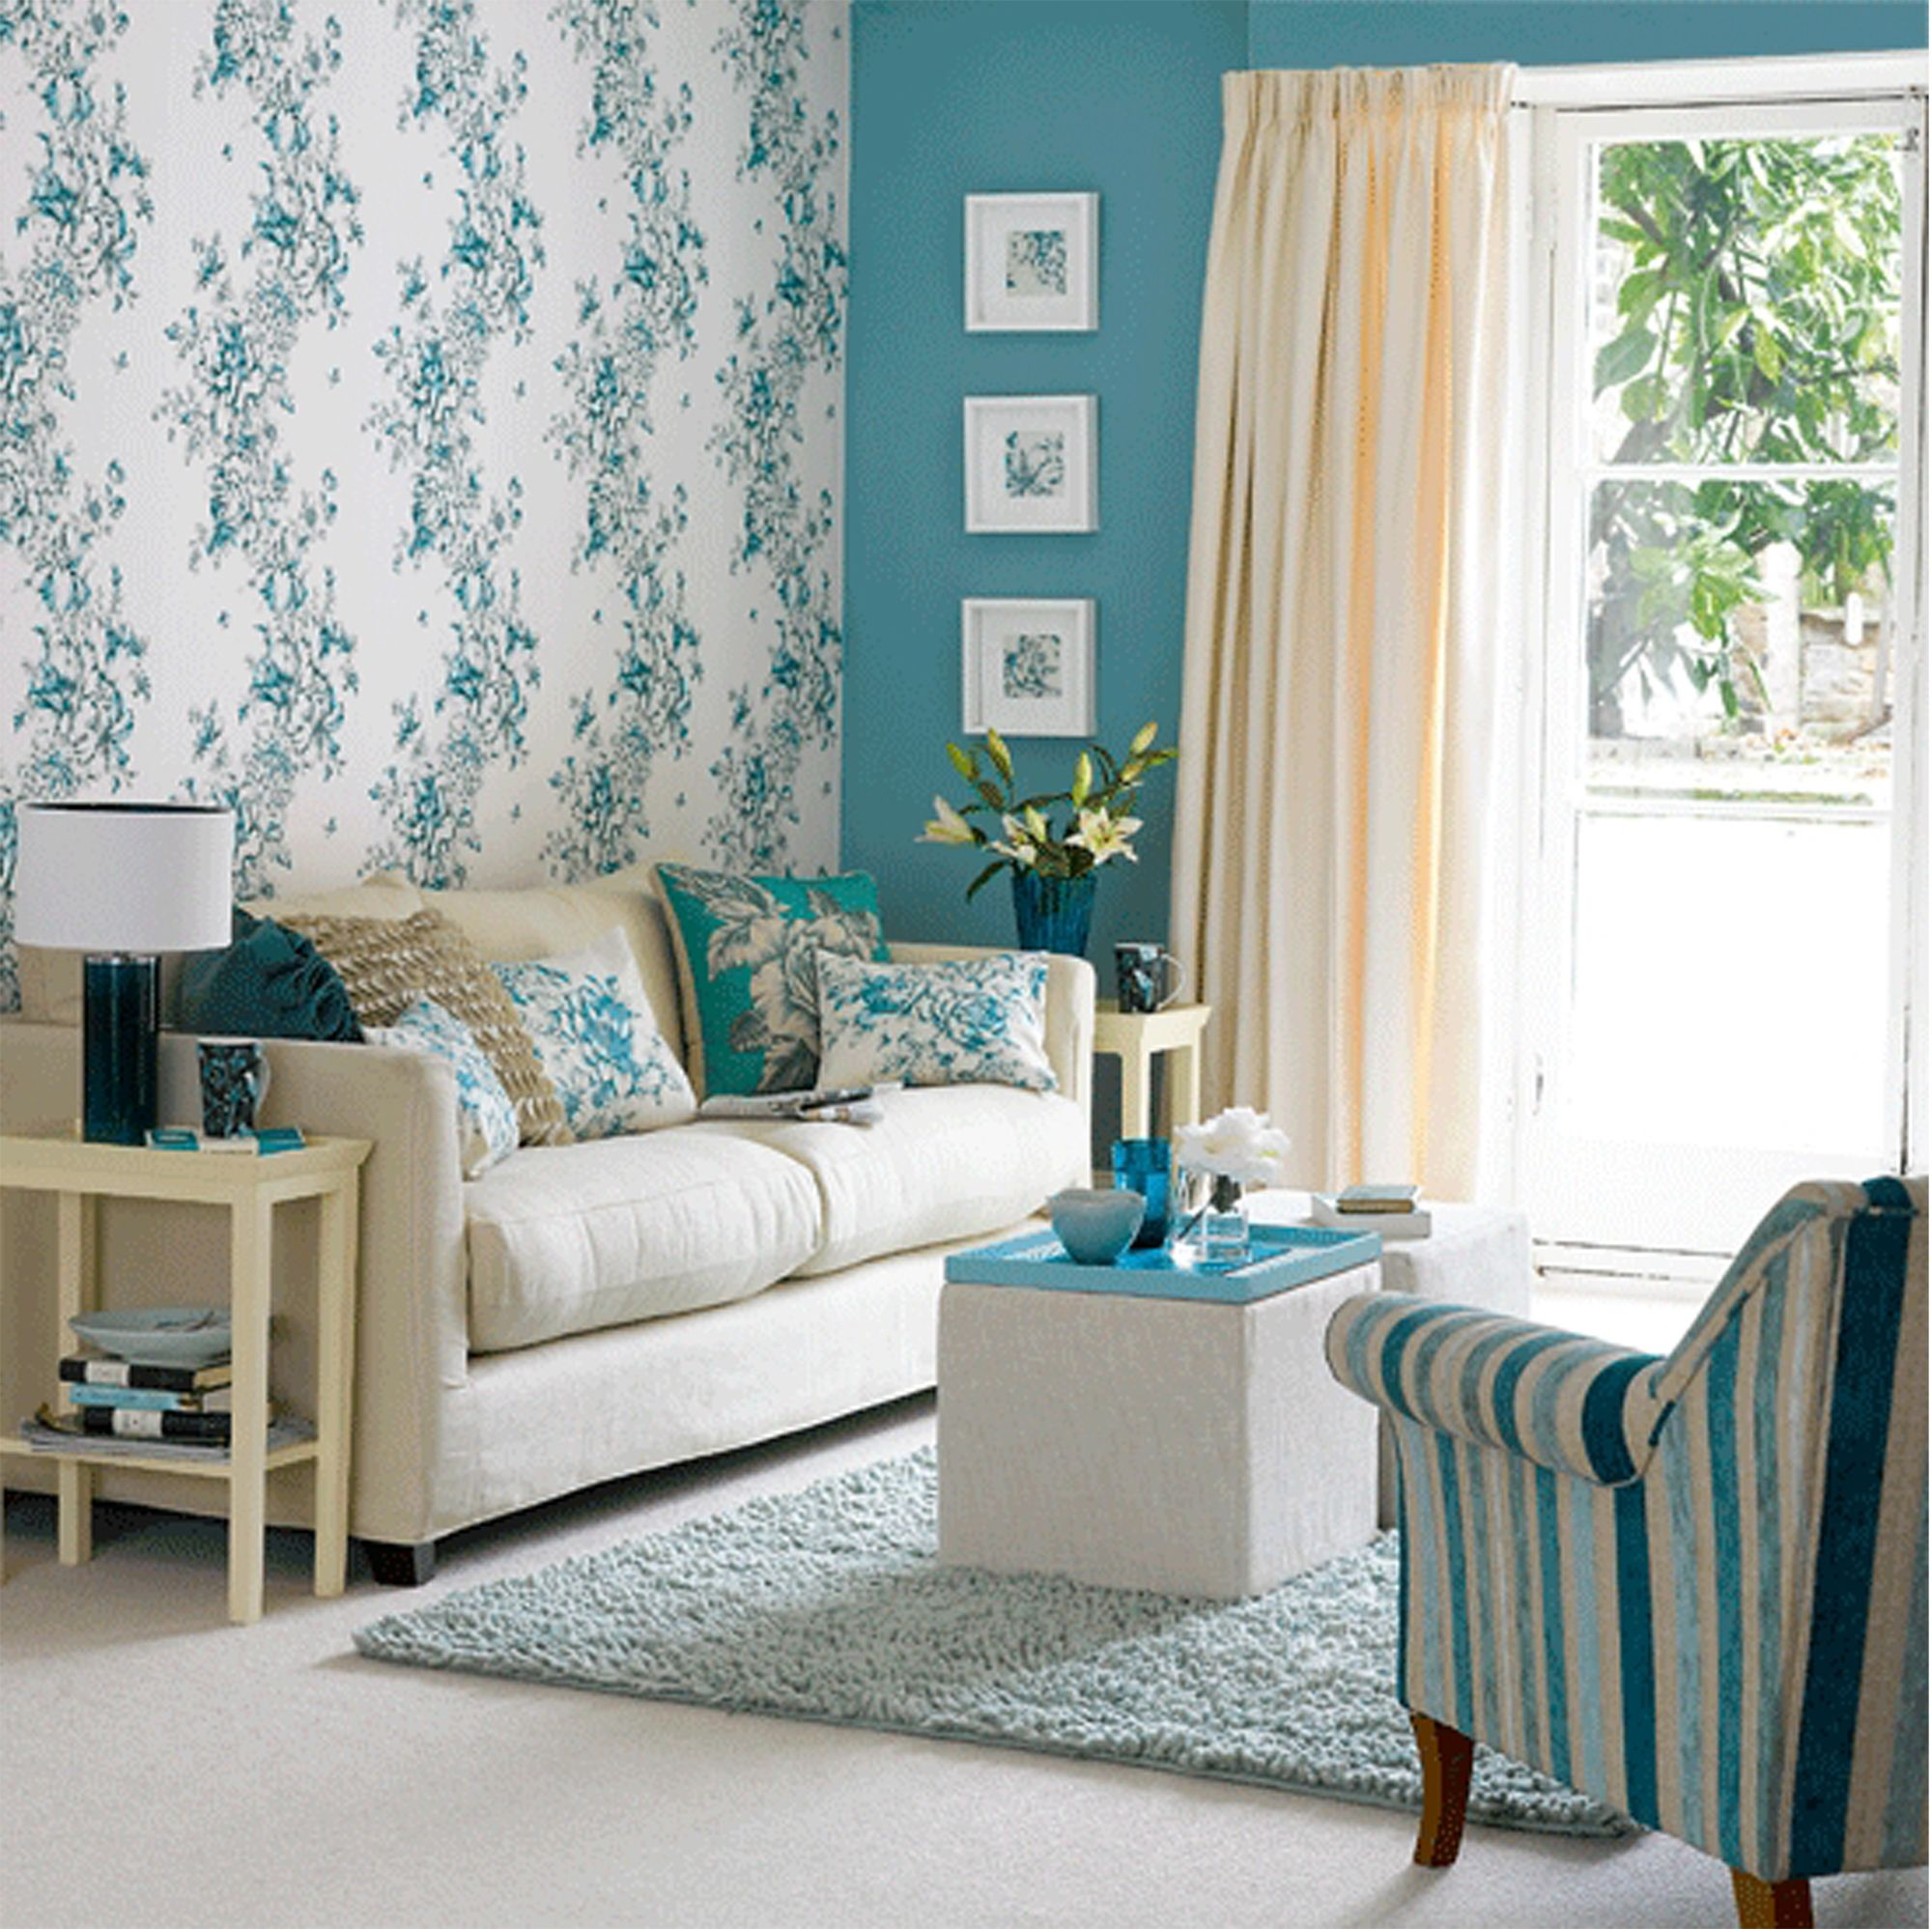 Retro Floral Wallpaper Design Ideas For Small Living Room with